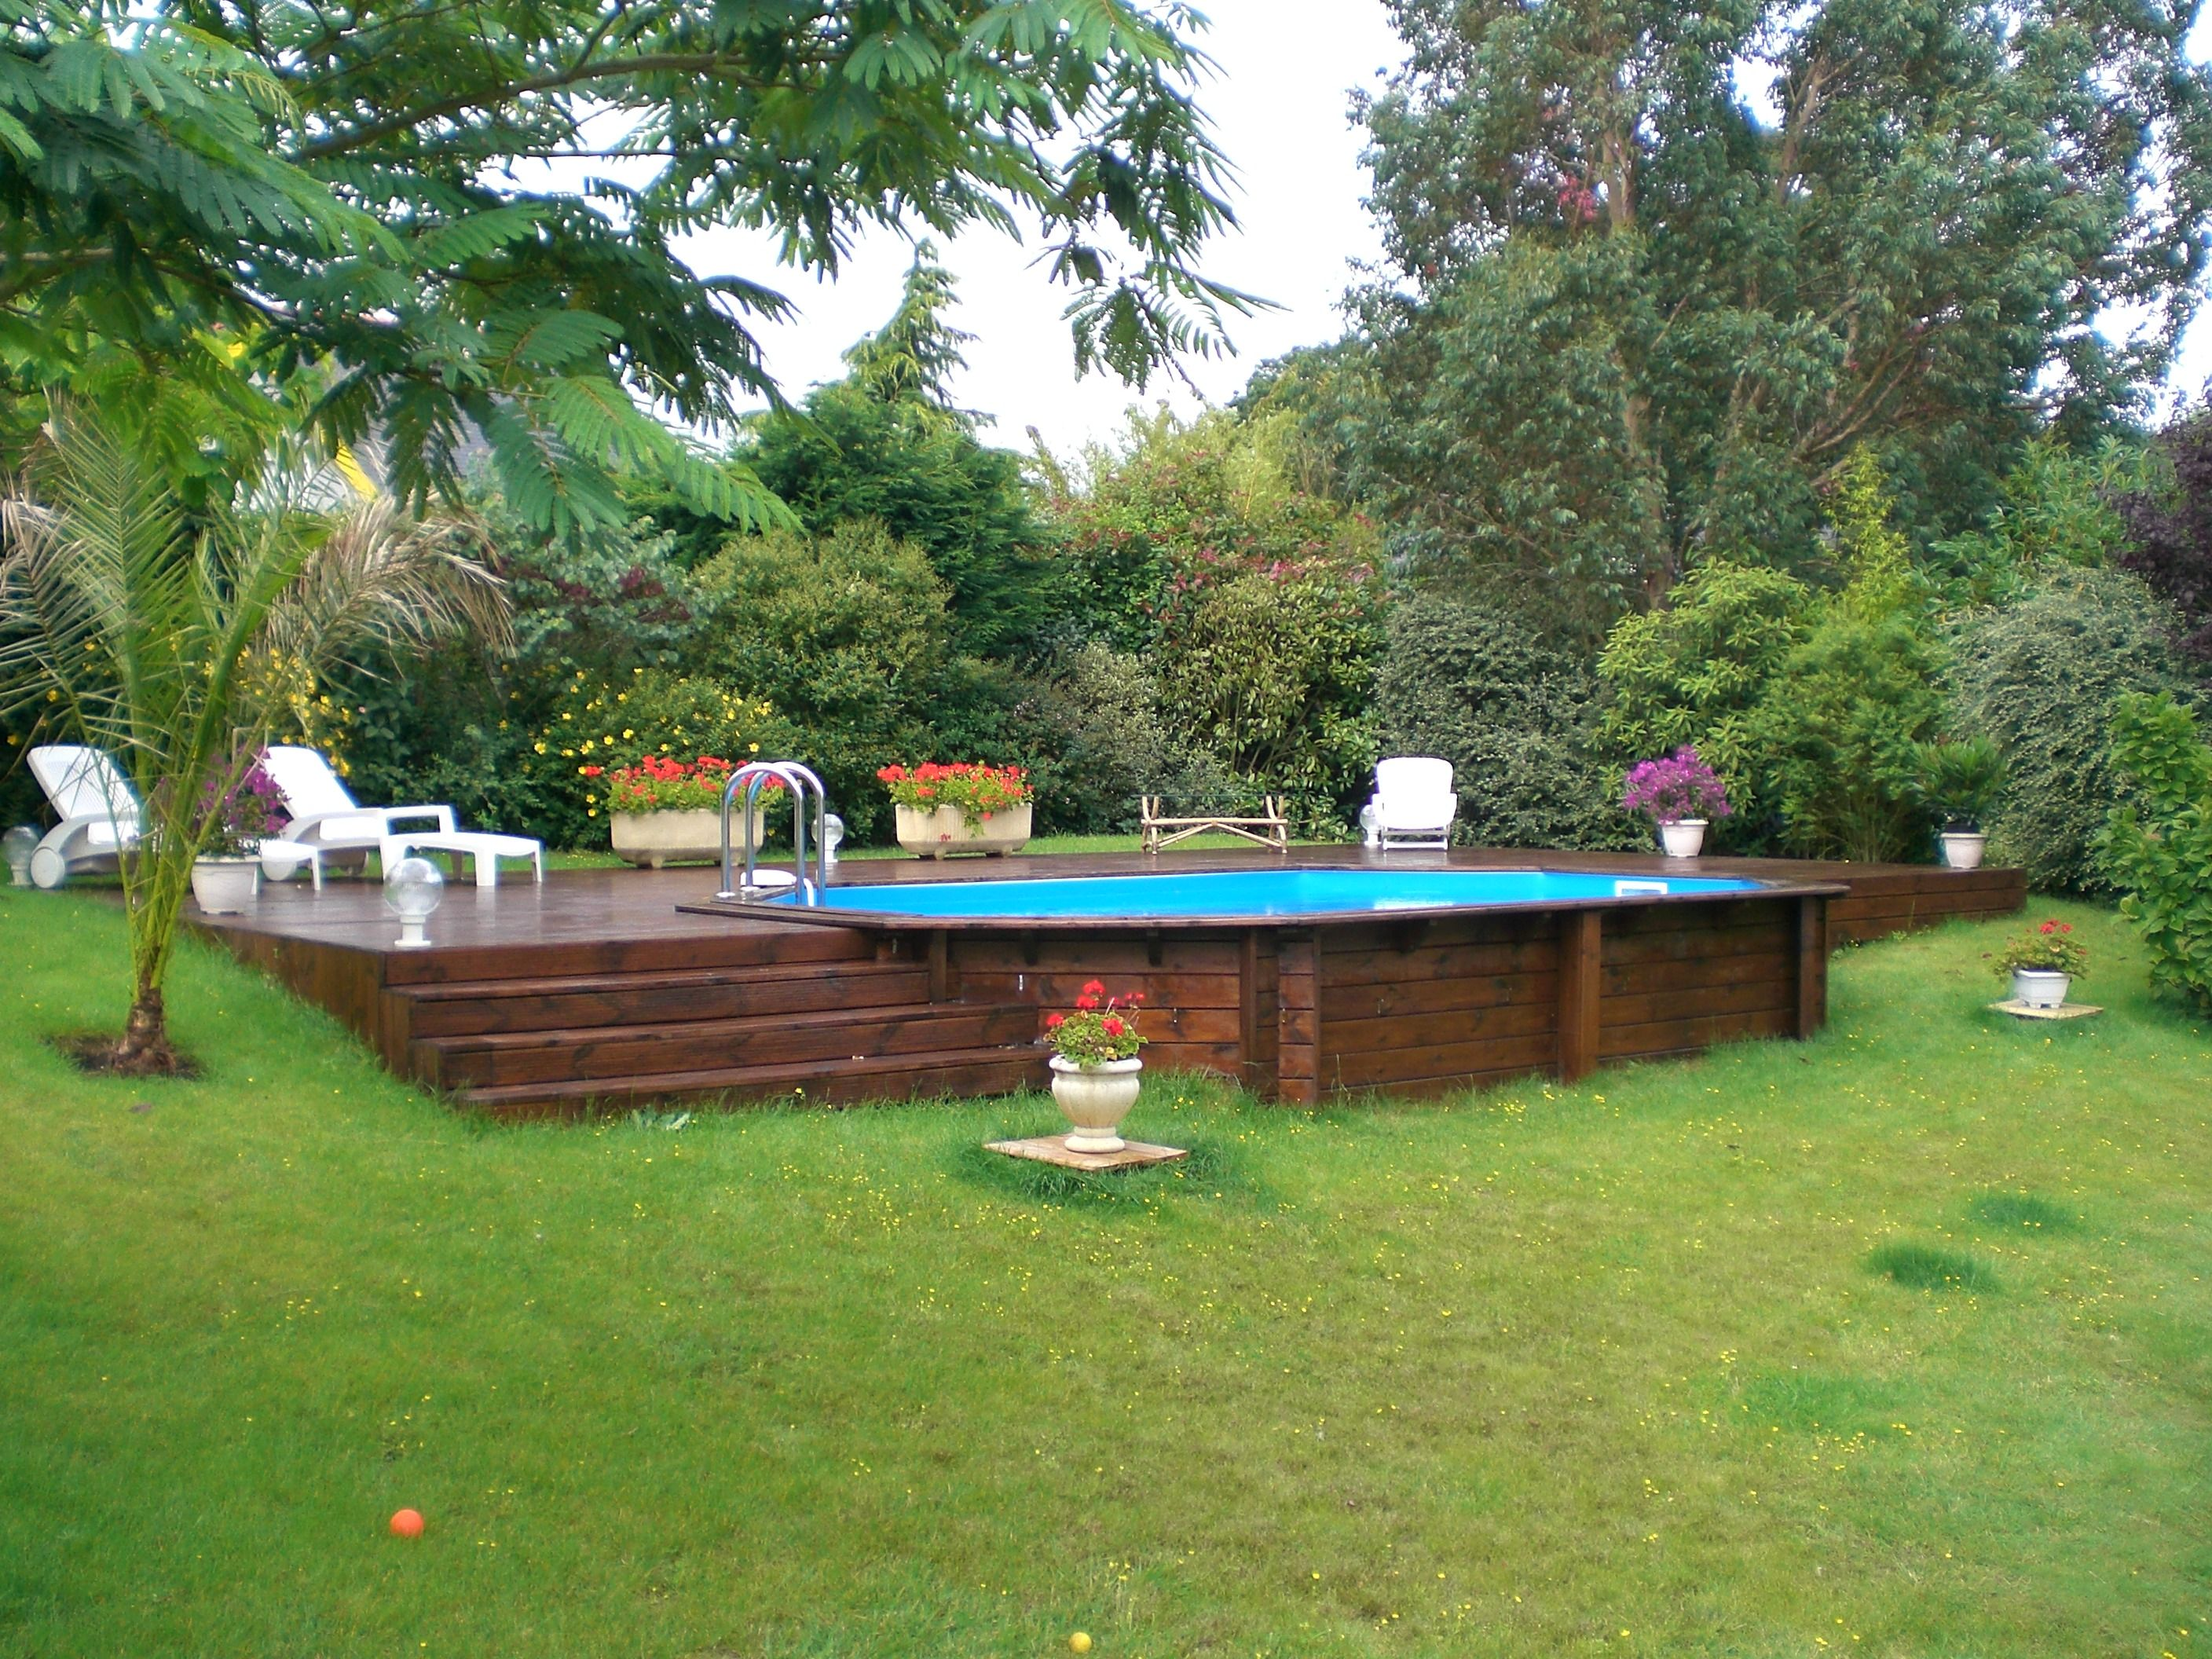 Piscine hors sol en bois semi enterr e sur terrain en for Piscine semi enterree bois hexagonale